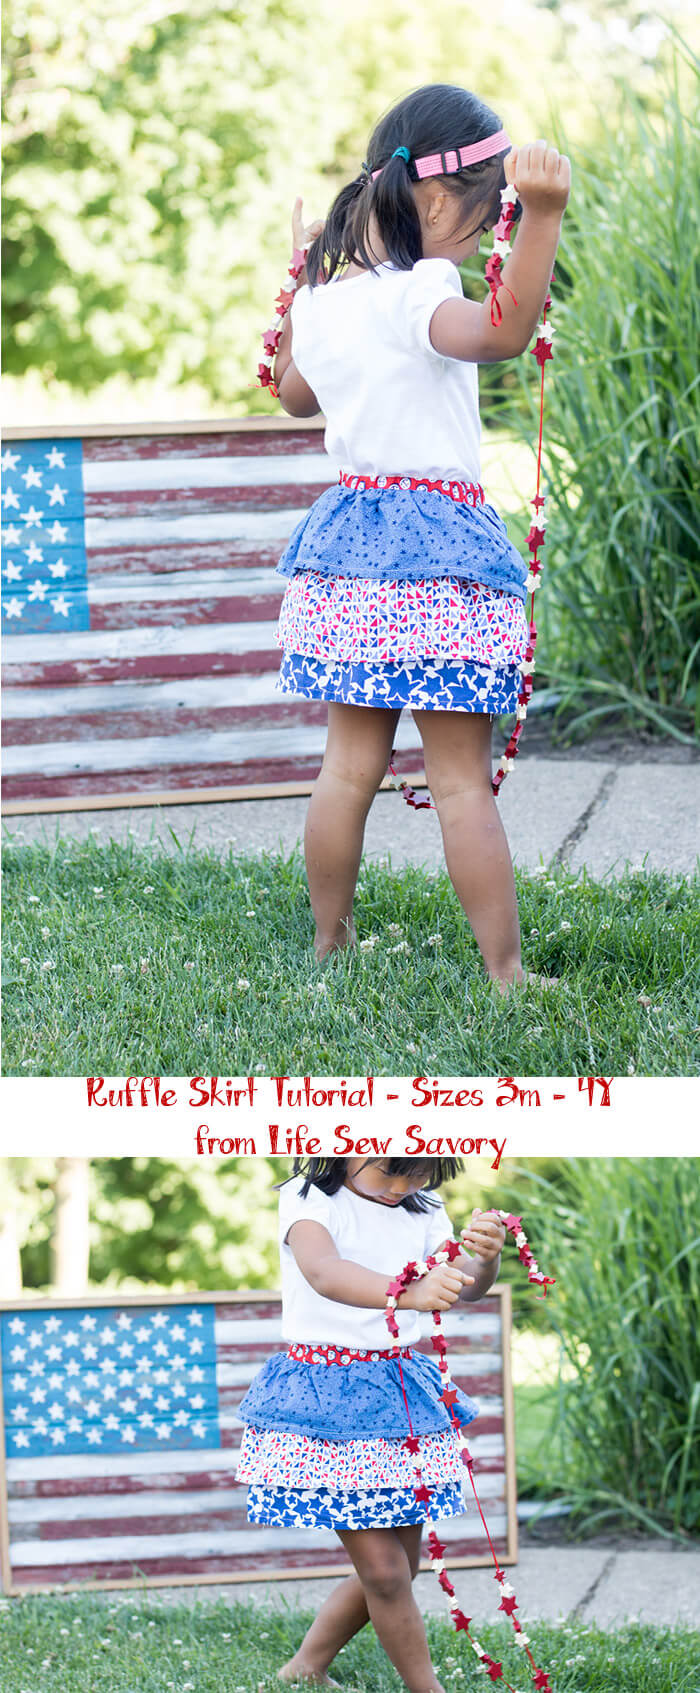 ruffle skirt tutorial from life sew savory 3m-12Y